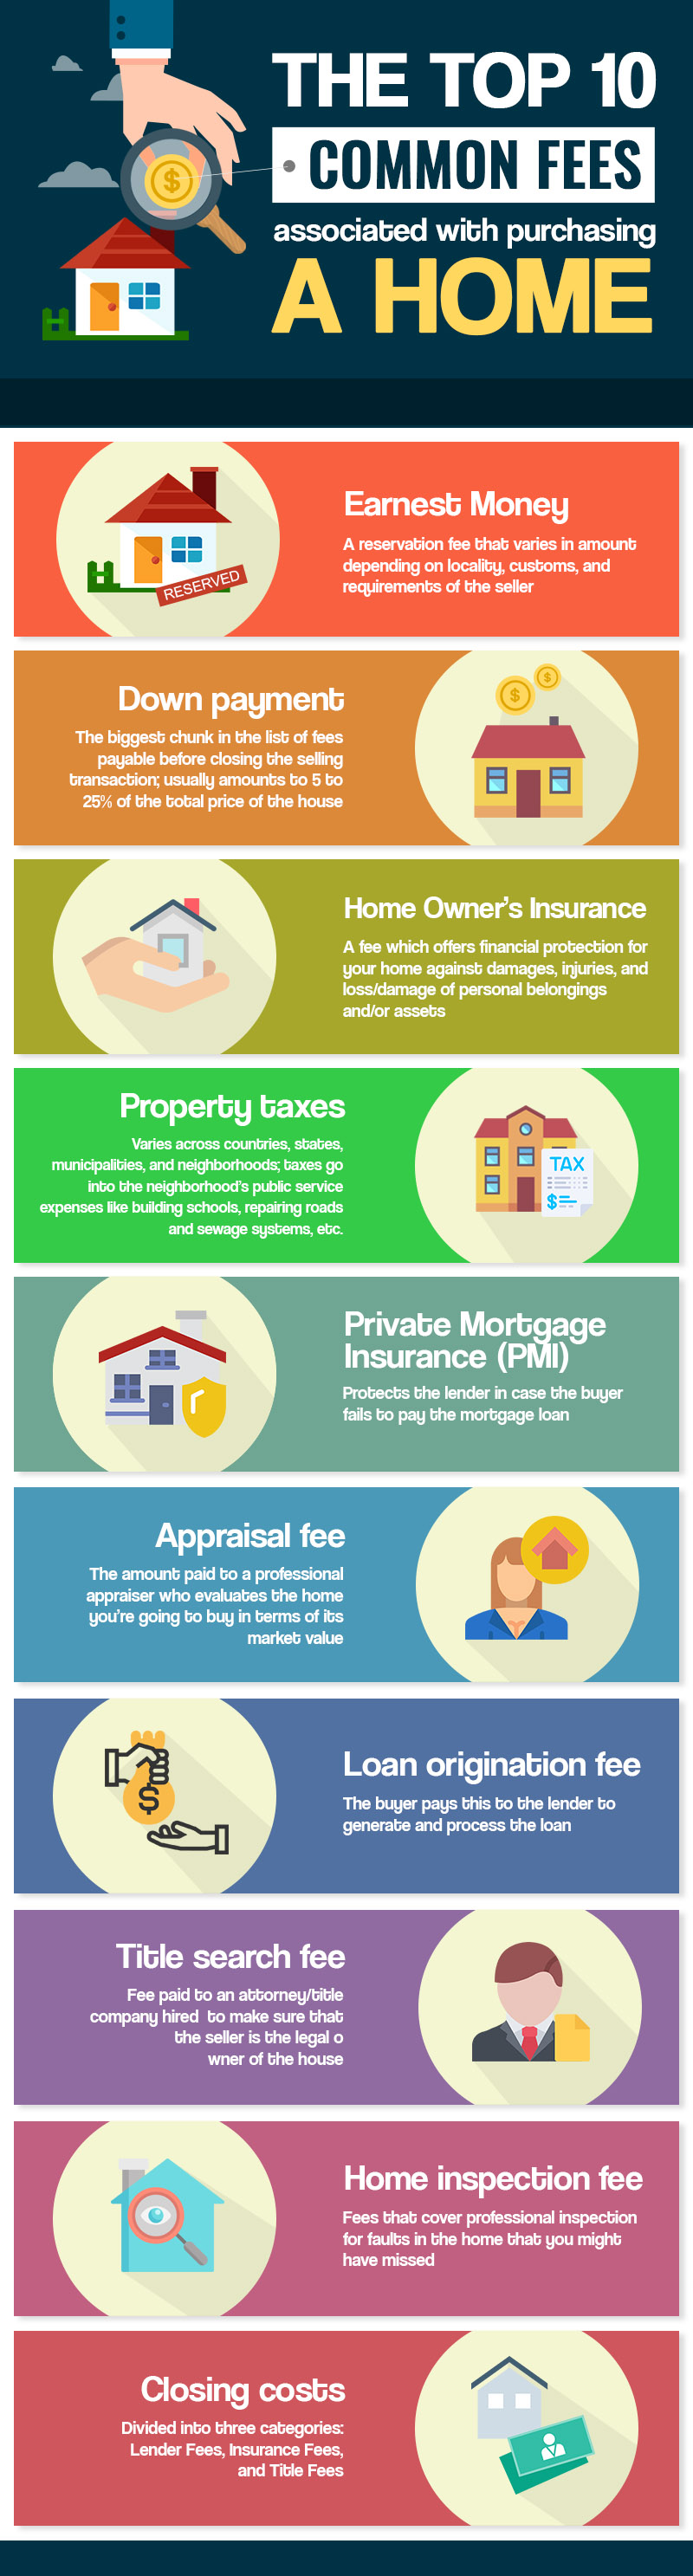 Top 10 Fees You Need To Know About When Purchasing A Home